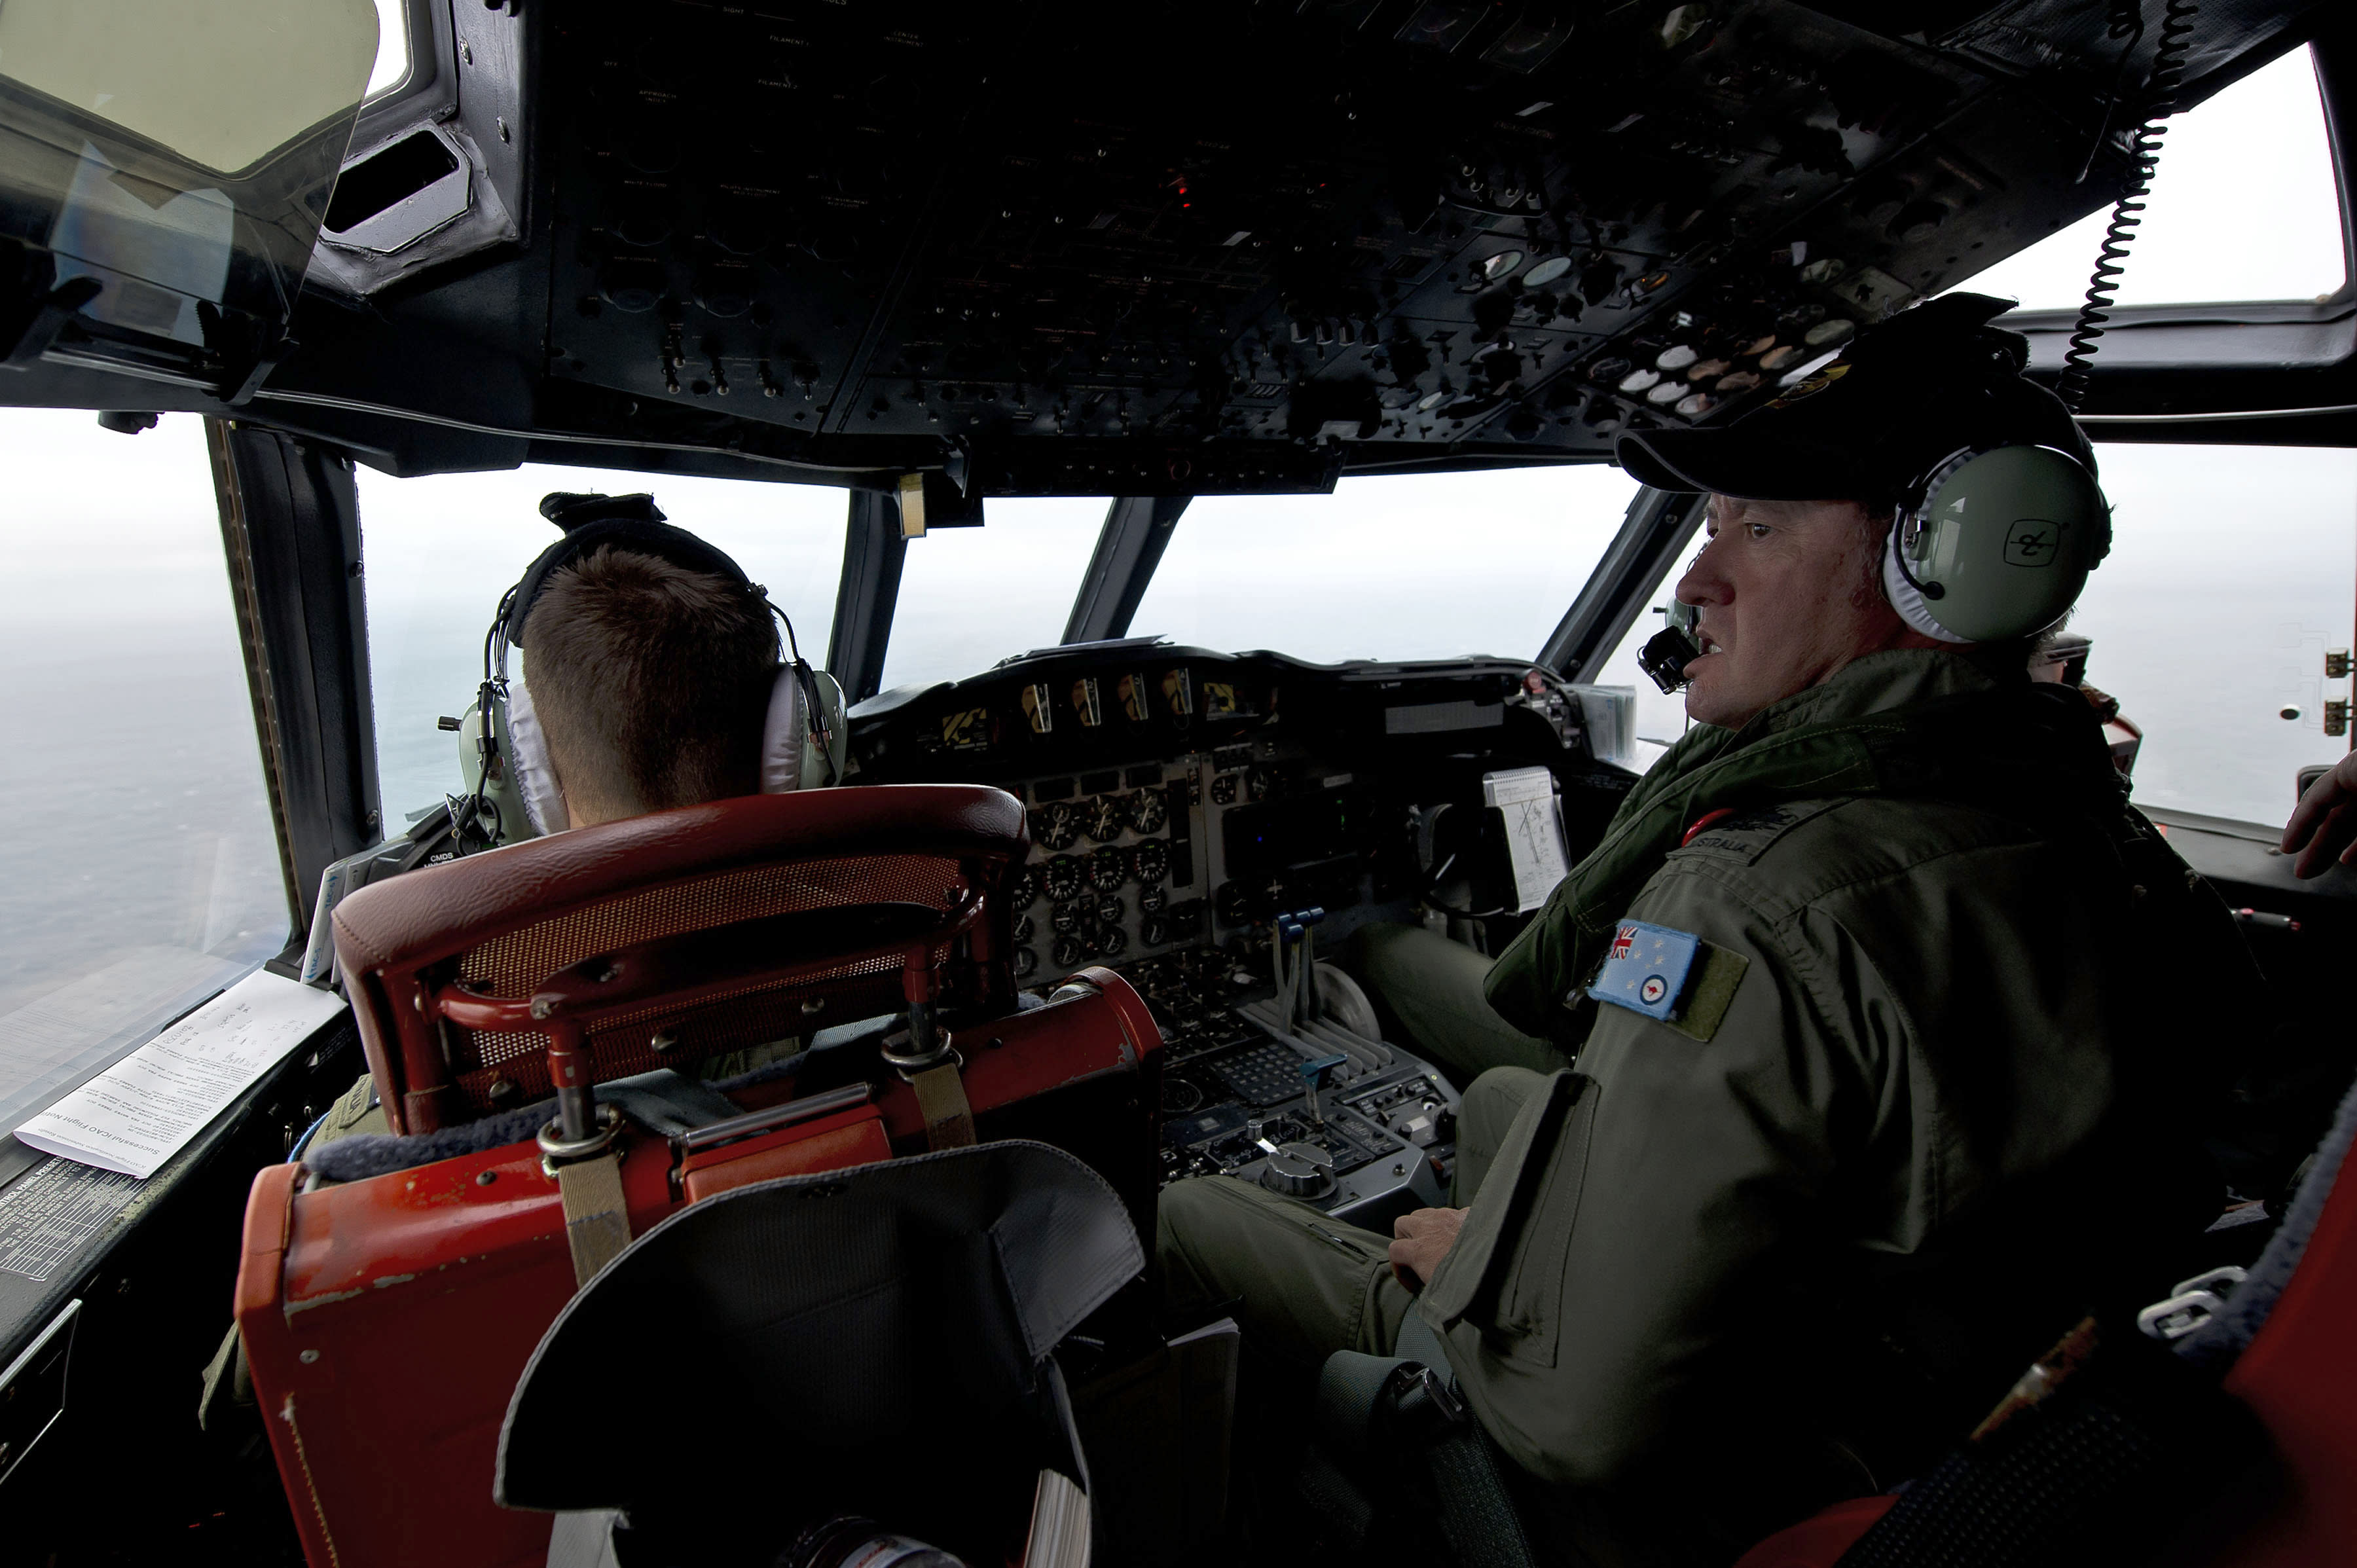 This Wednesday, March 19, 2014 photo released by the Australia Defence Department, shows Royal Australian Air Force Flight Engineer, Warrant Officer Ron Day from 10 Squadron, on board an AP-3C Orion over the Southern Indian Ocean off the Western Australian coast during a search operation for the missing Malaysian Airlines flight MH370. Australian Prime Minister Tony Abbott said Thursday that two objects possibly related to the missing flight have been spotted on satellite imagery in the Indian Ocean and an air force aircraft was diverted to the area to try to locate them. (AP Photo/Australia Defence Department, Hamish Paterson)